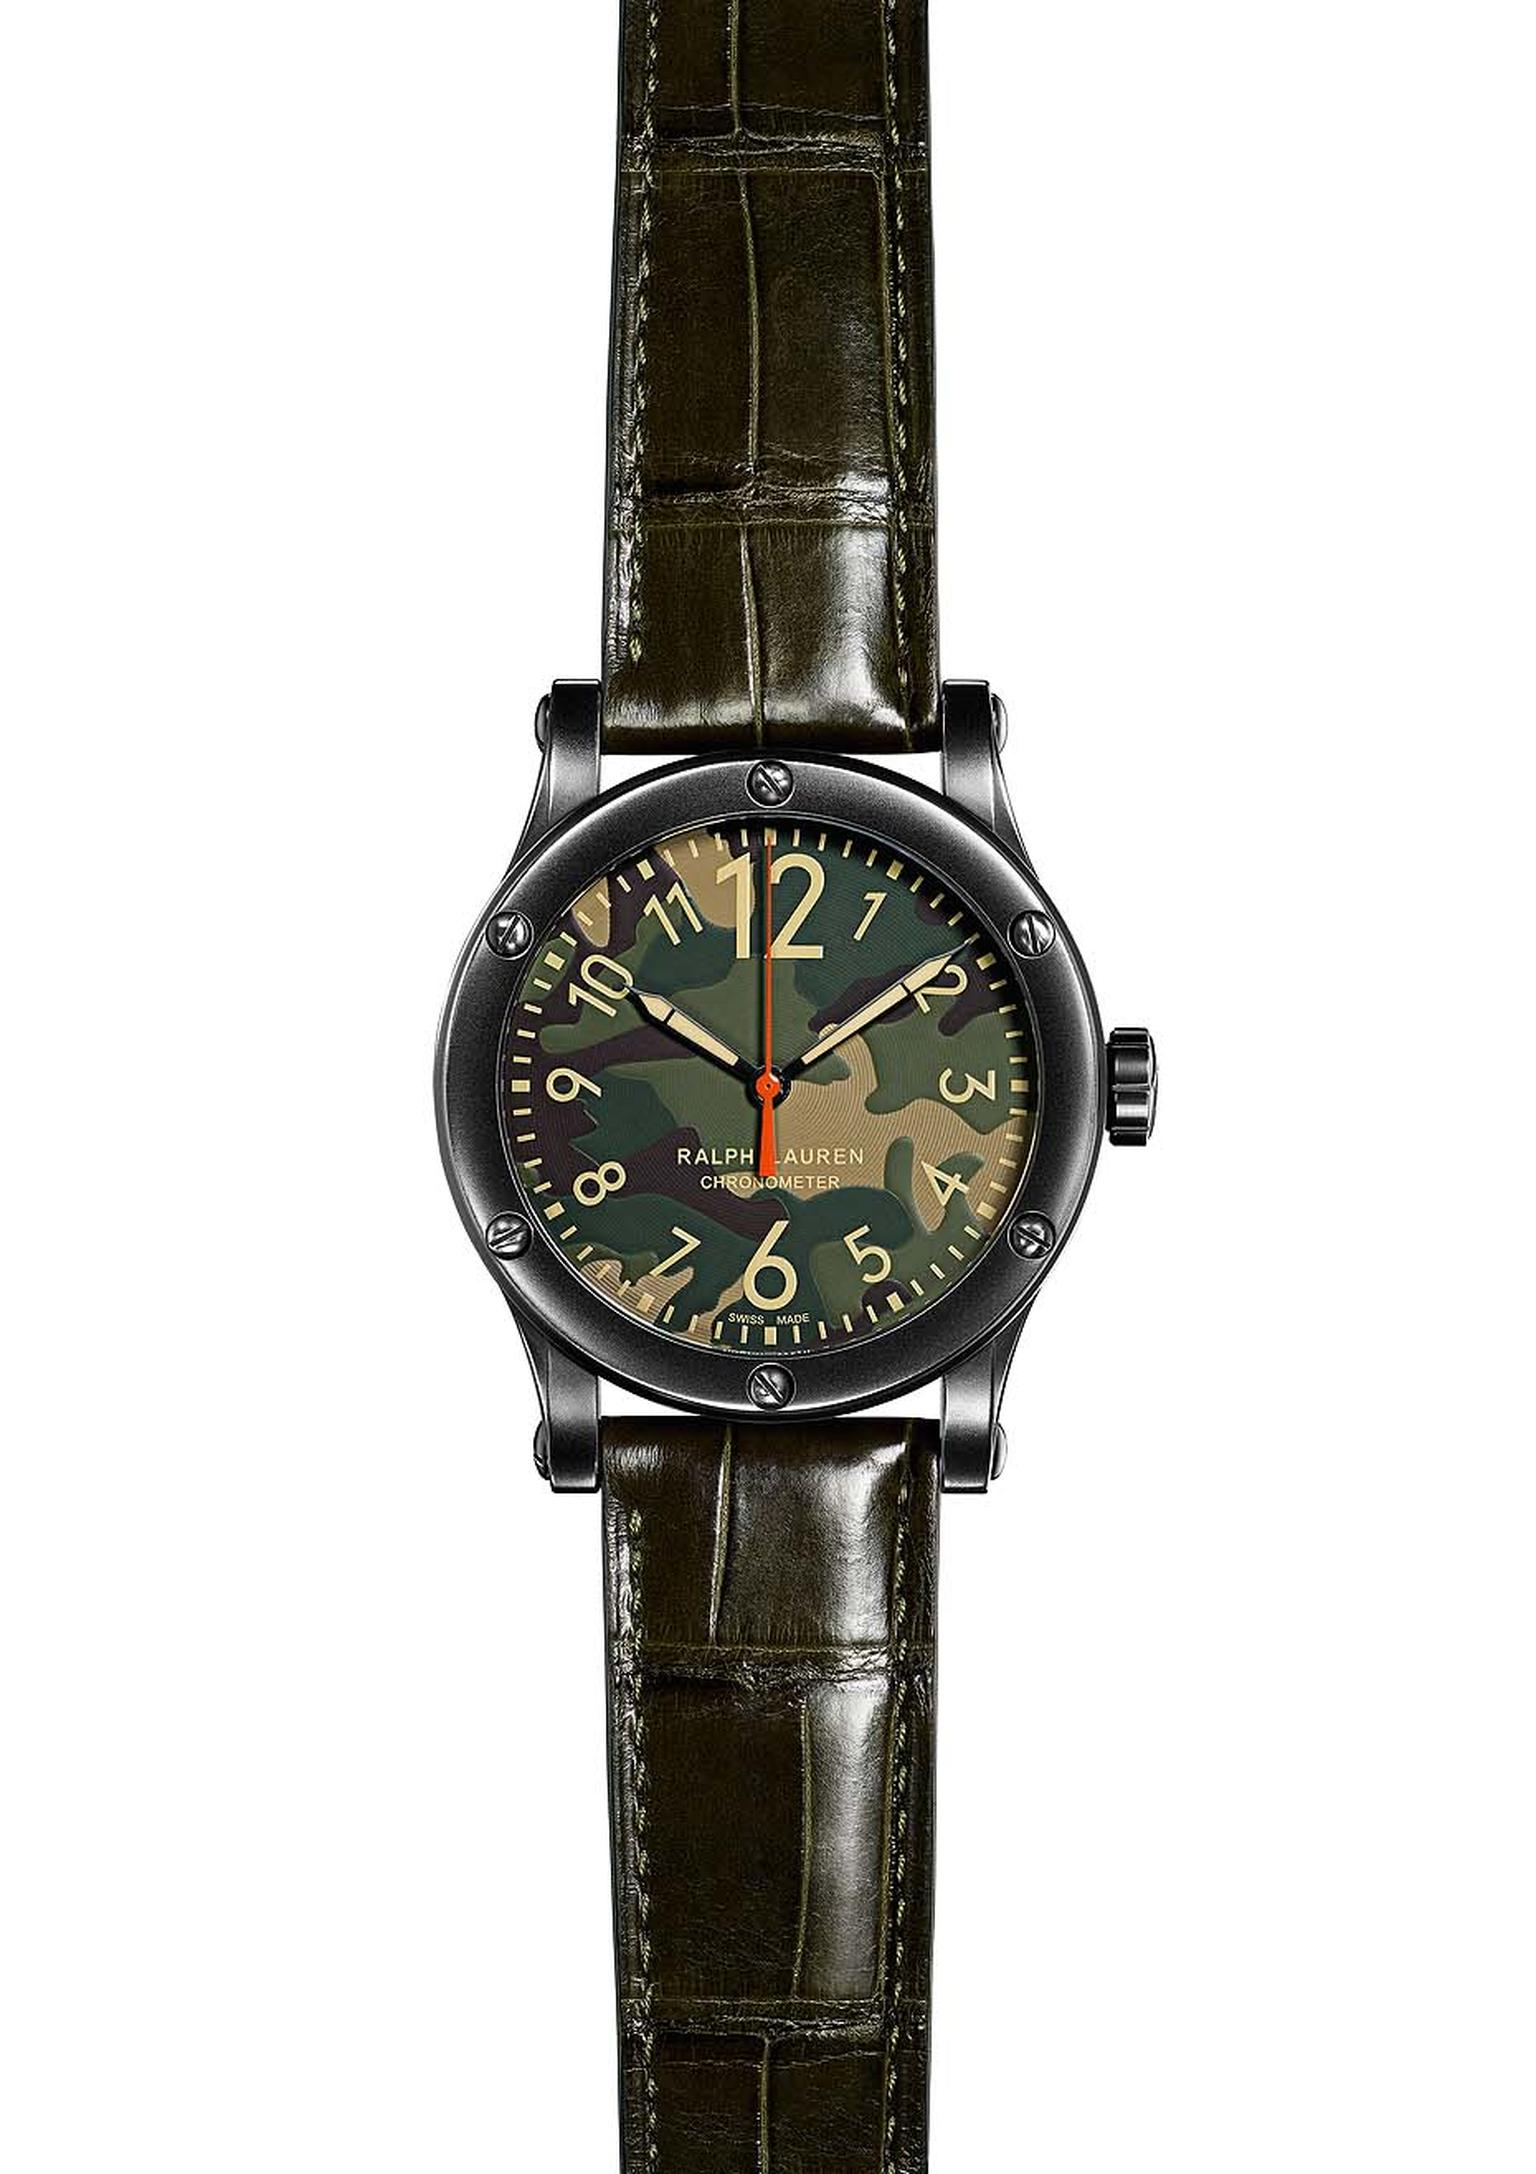 Ralph Lauren watches Safari Chronometer boasts a mottled green camouflage dial and comes in a 45mm blackened steel case with a green alligator strap.